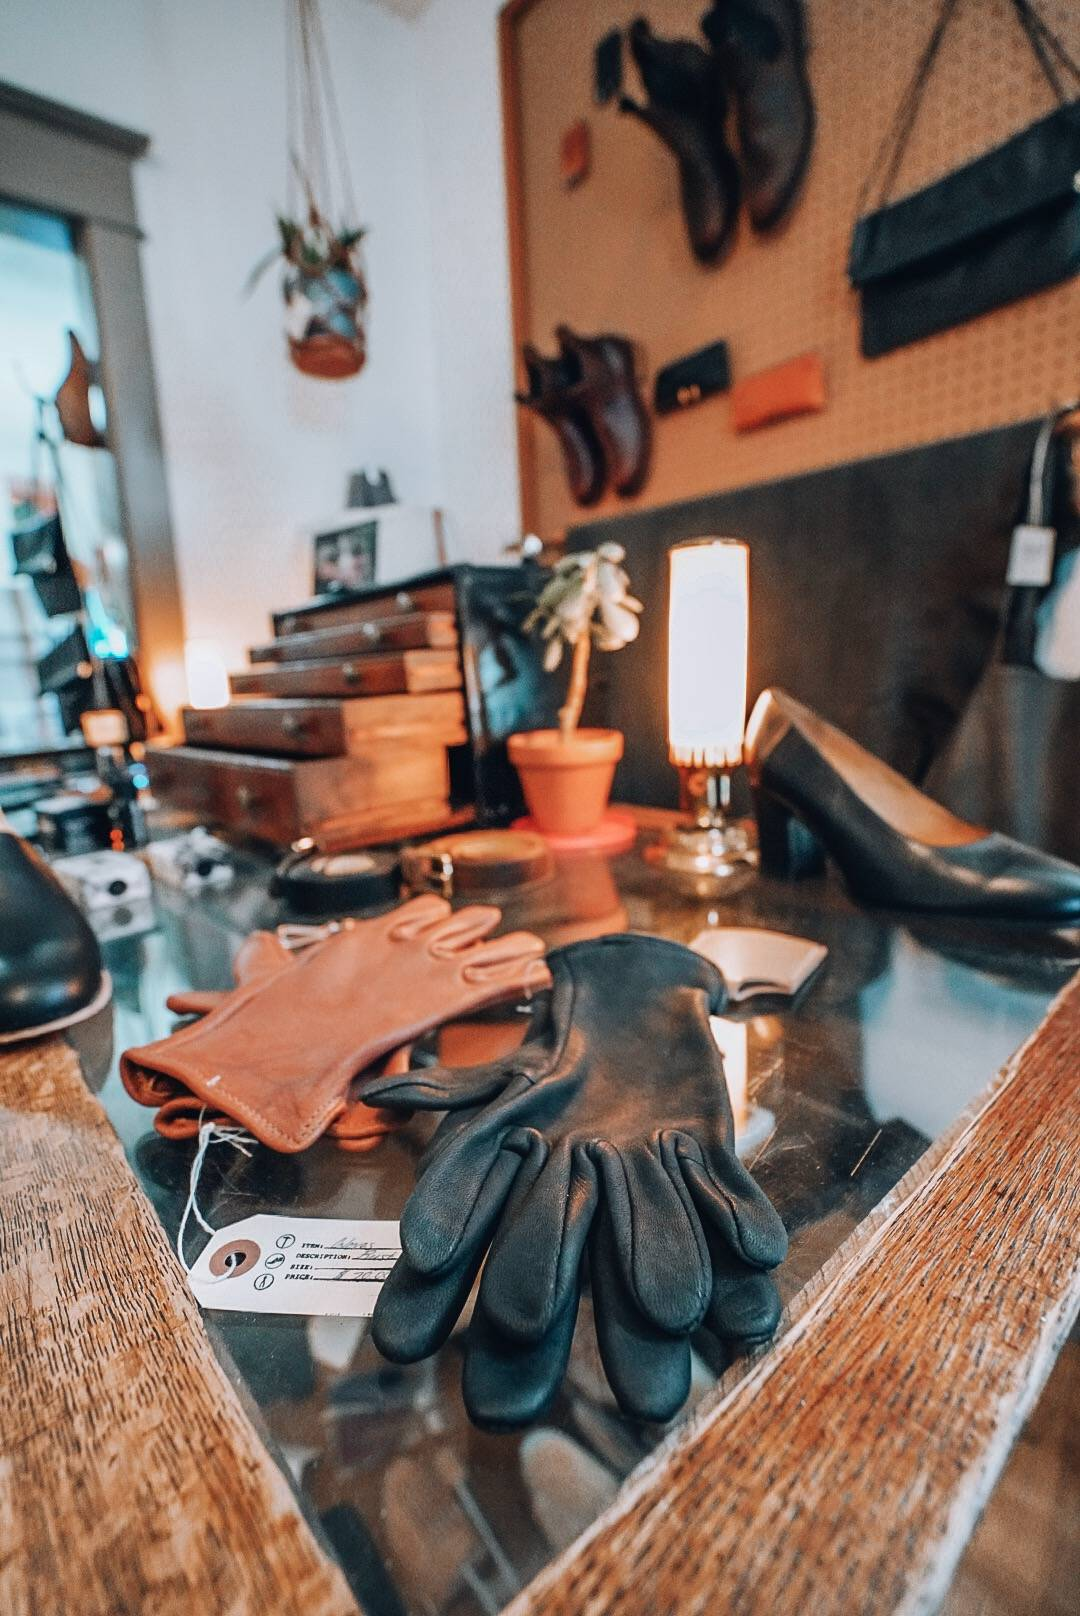 Planning a trip to Saskatoon? Check out this guide covering everything to do, see and eat in Saskatoon including a stop at Last Shoes to pick up a bespoke leather treasure!